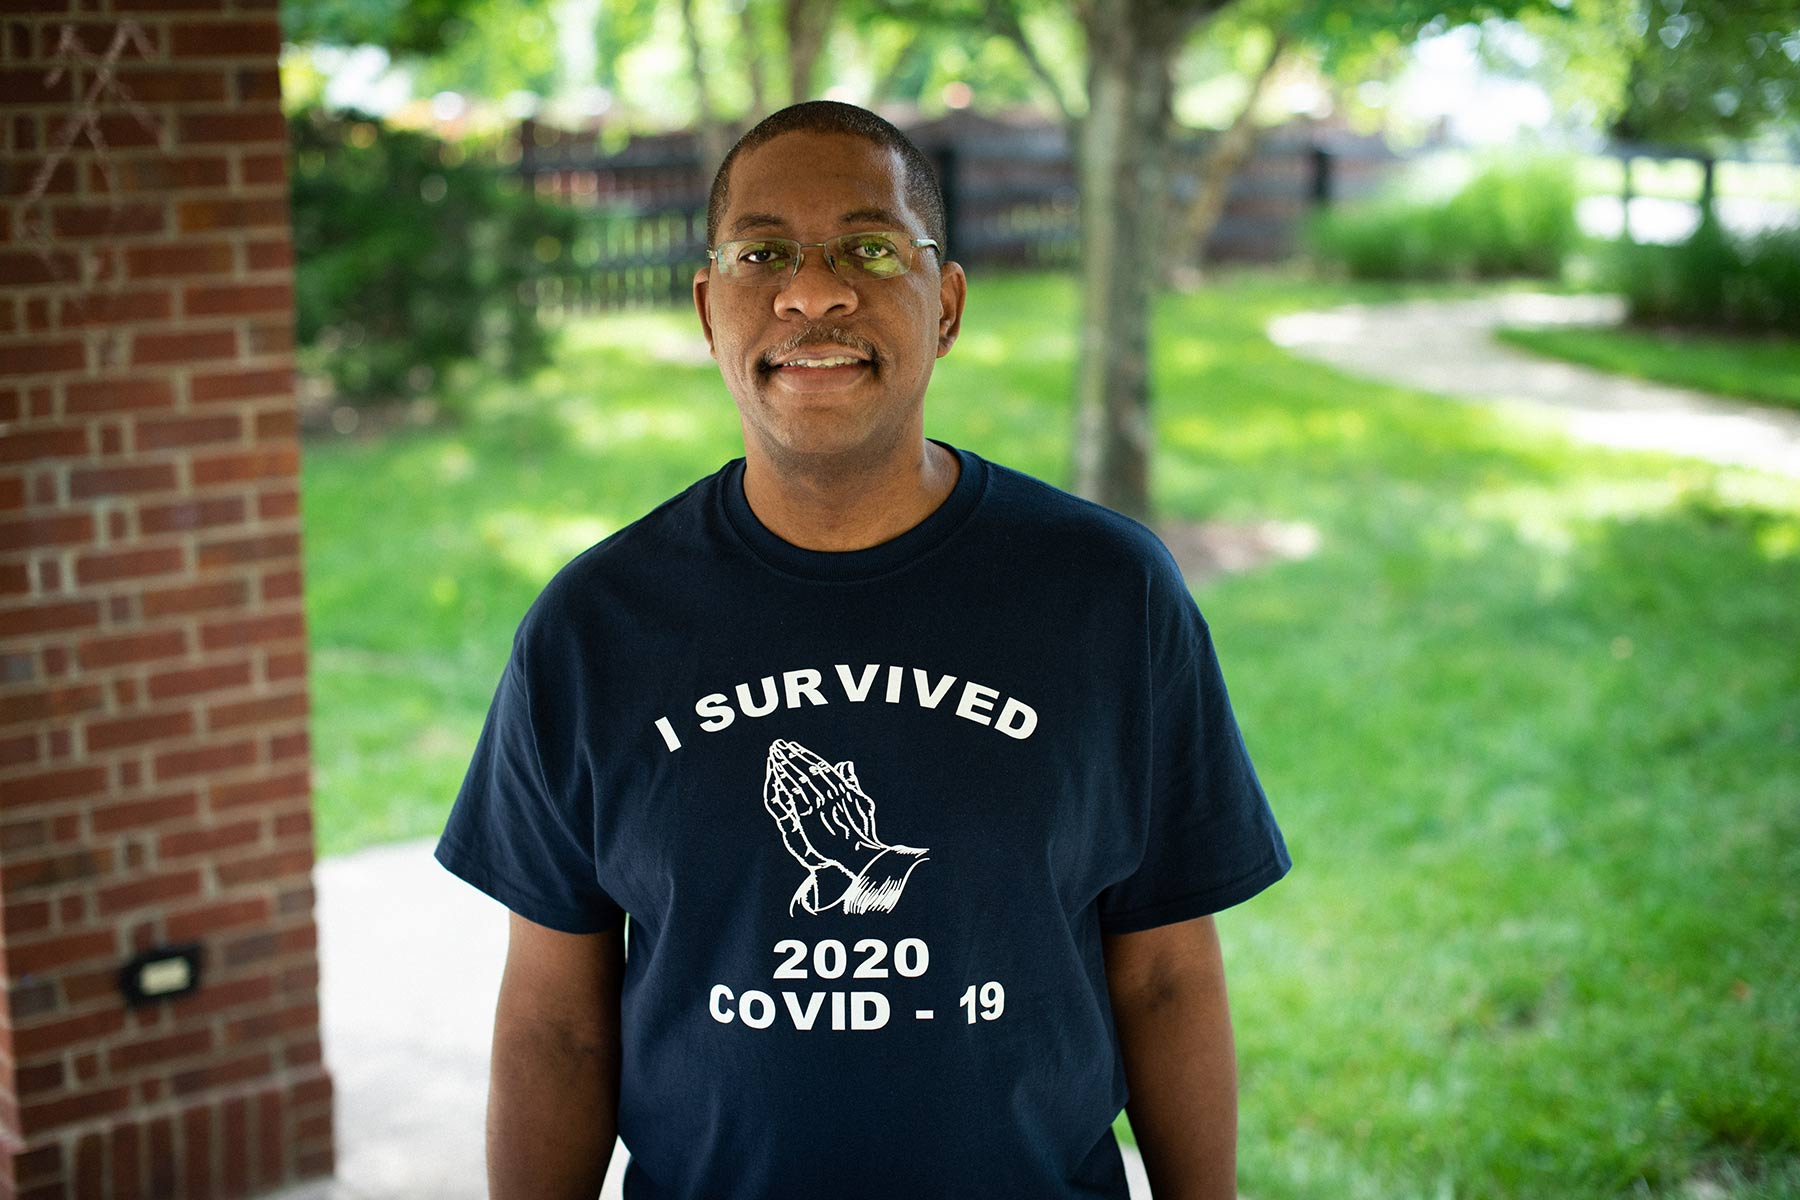 """Portrait of Jerome outside smiling while wearing a shirt that says """"I survived 2020 COVID-19""""."""